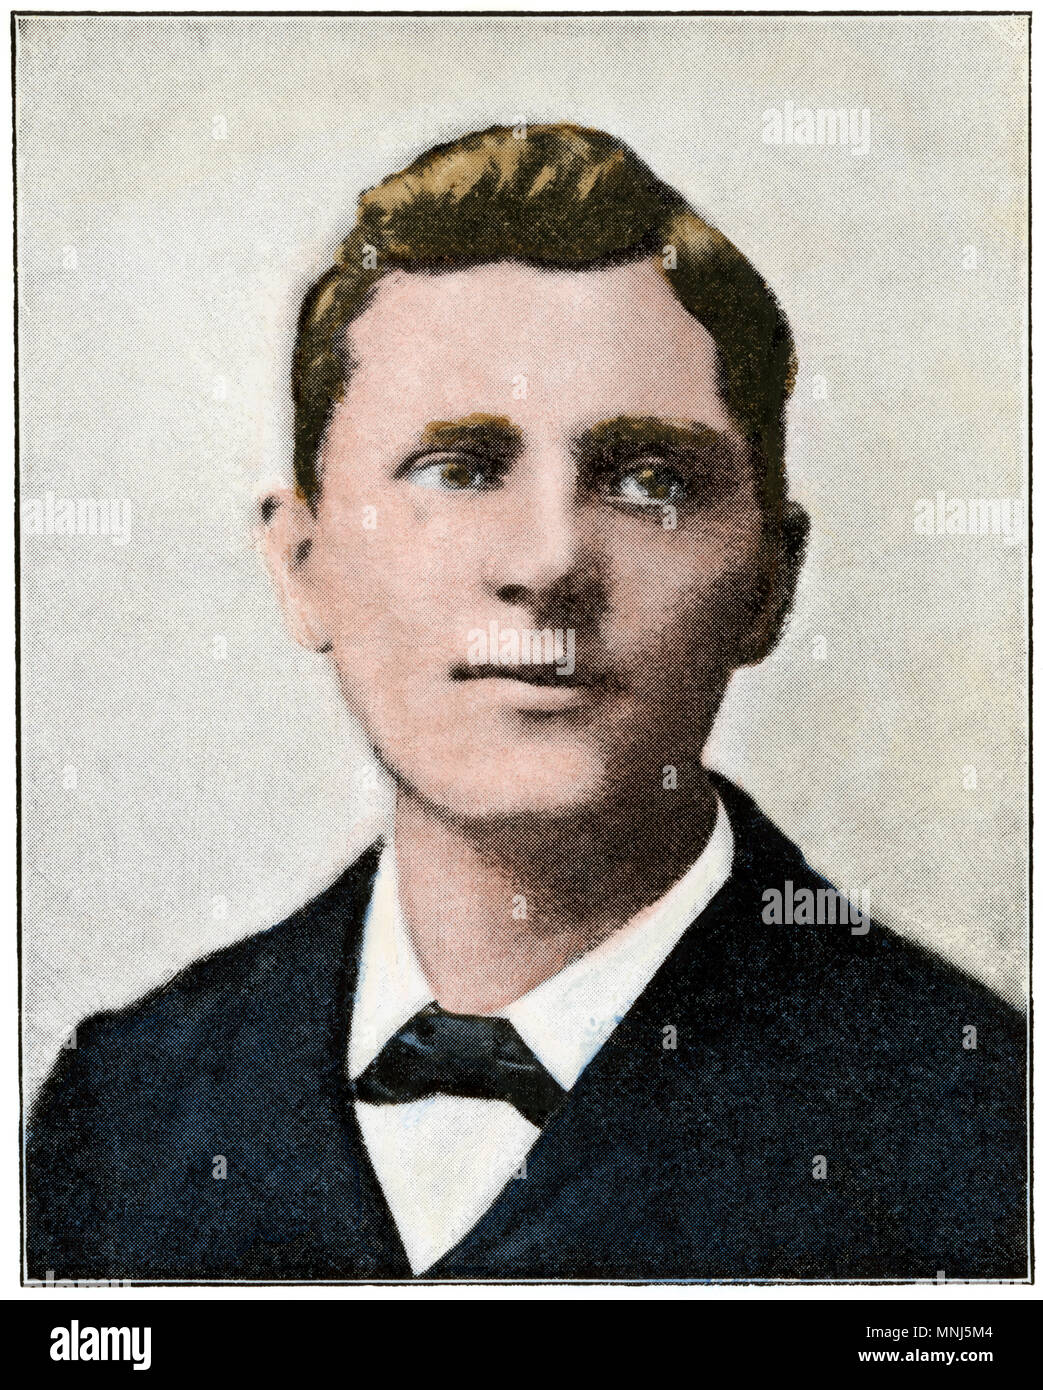 Leon Czolgosz, assassin of President William McKinley in 1901. Hand-colored halftone of a photograph - Stock Image